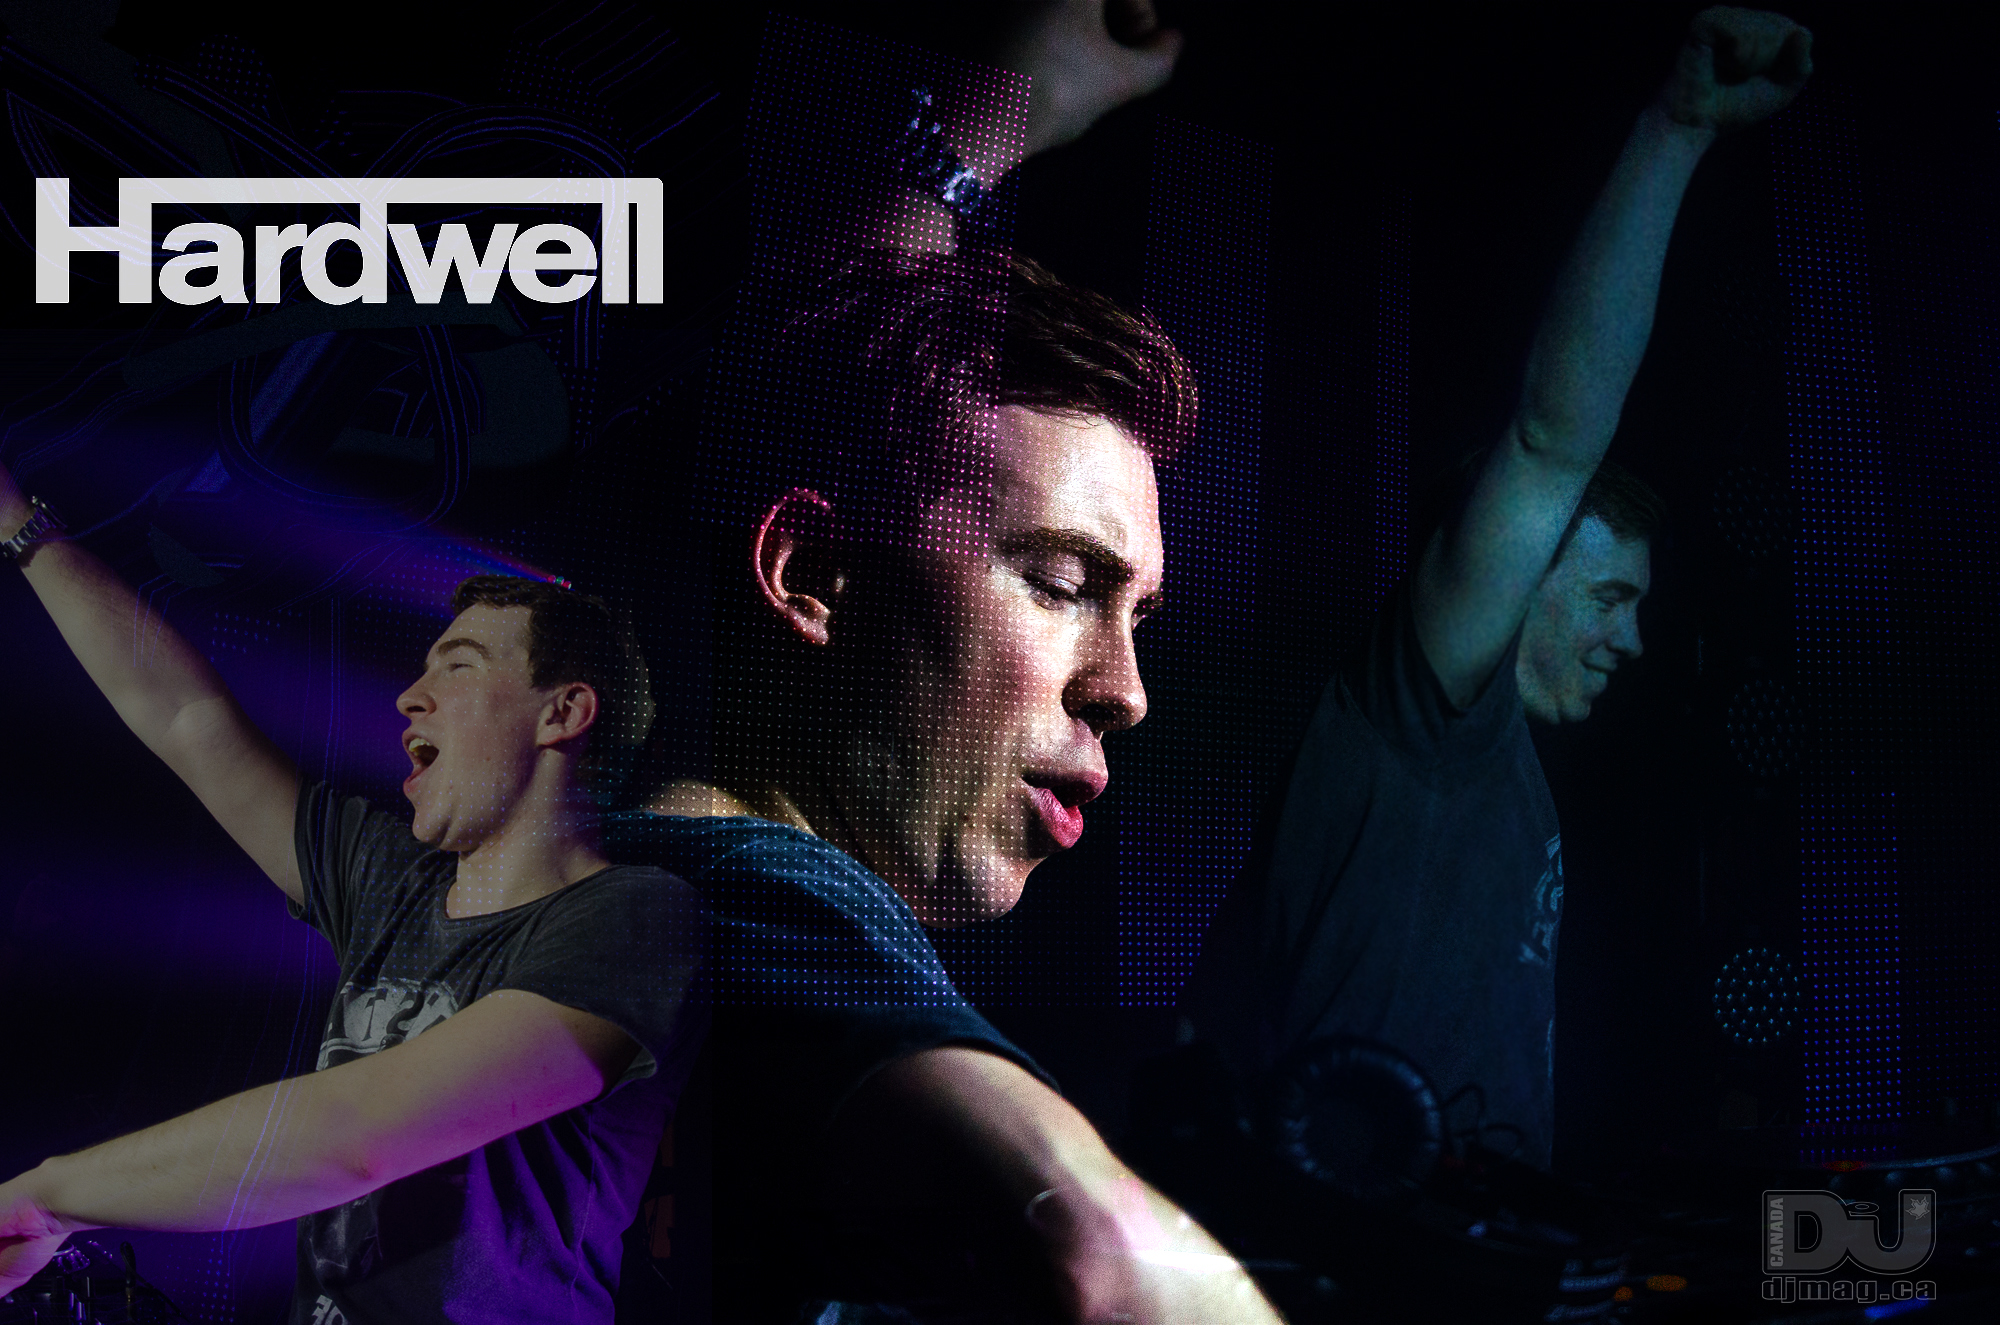 hardwell wallpaper hd - photo #27